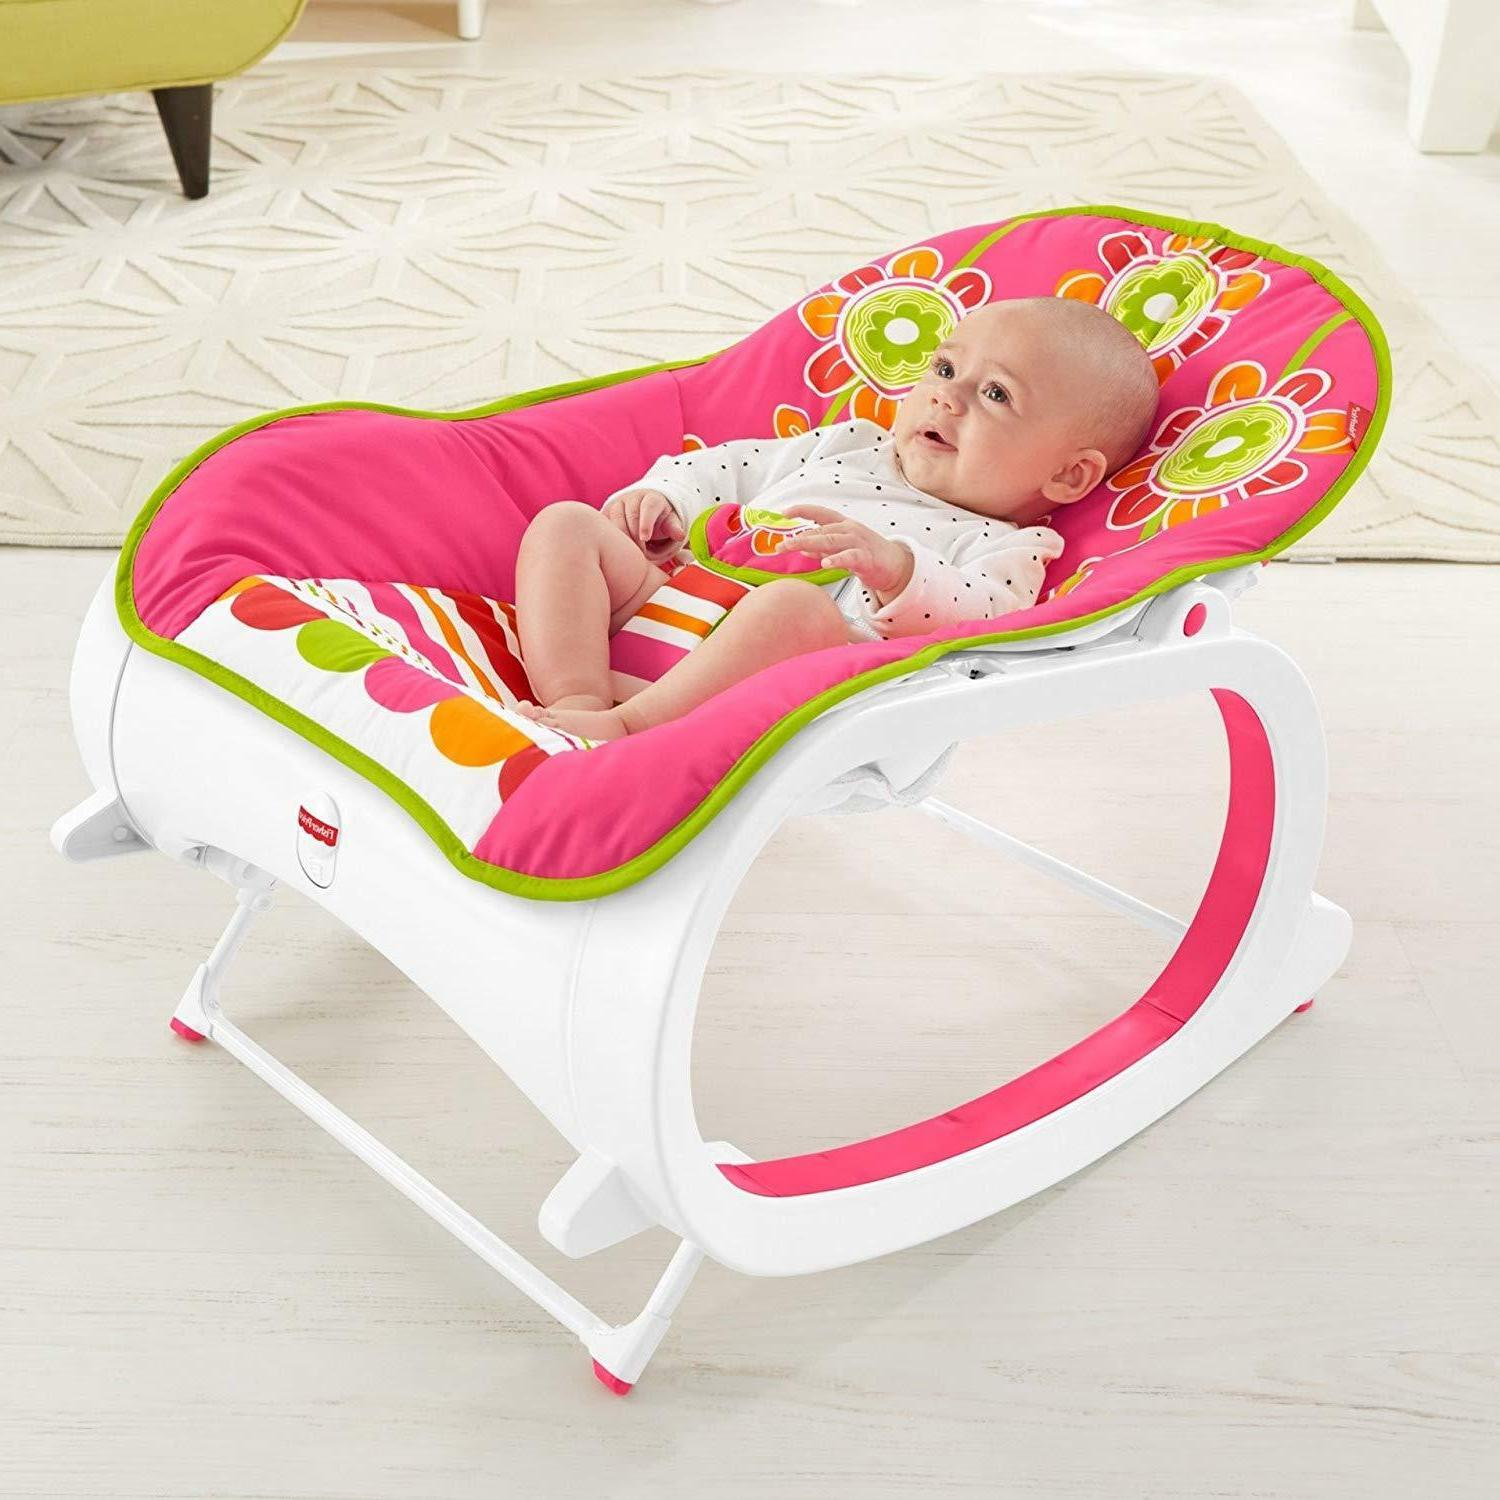 BABY ROCKER Toddler Rocking Swing Chair ...